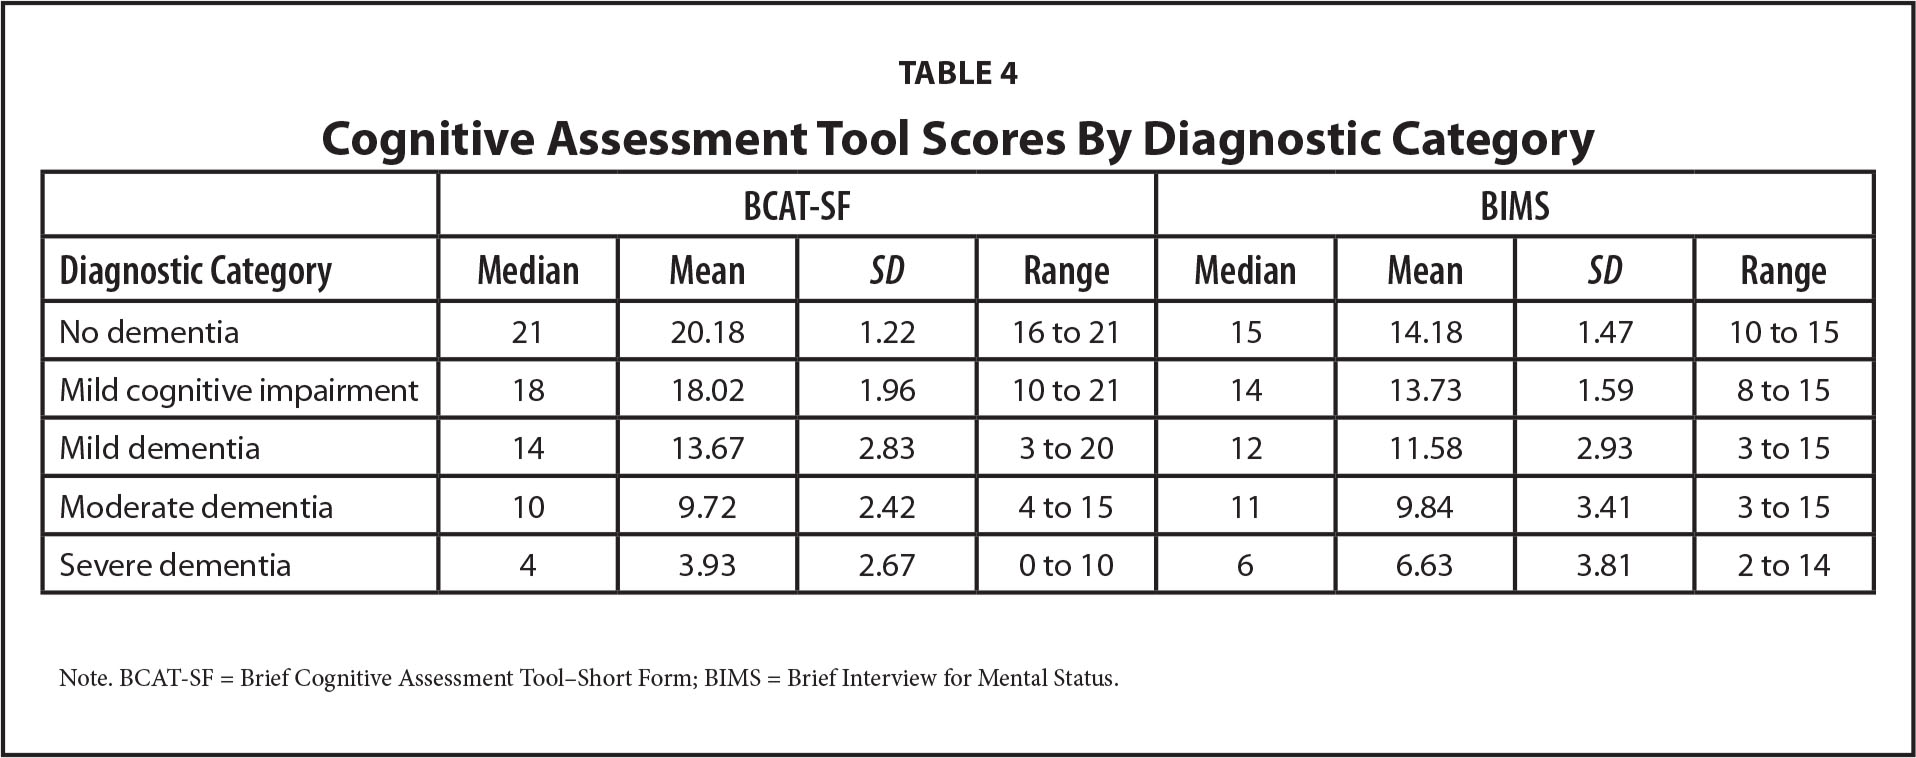 Rapid cognitive assessment of nursing home residents a comparison cognitive assessment tool scores by diagnostic category nvjuhfo Choice Image